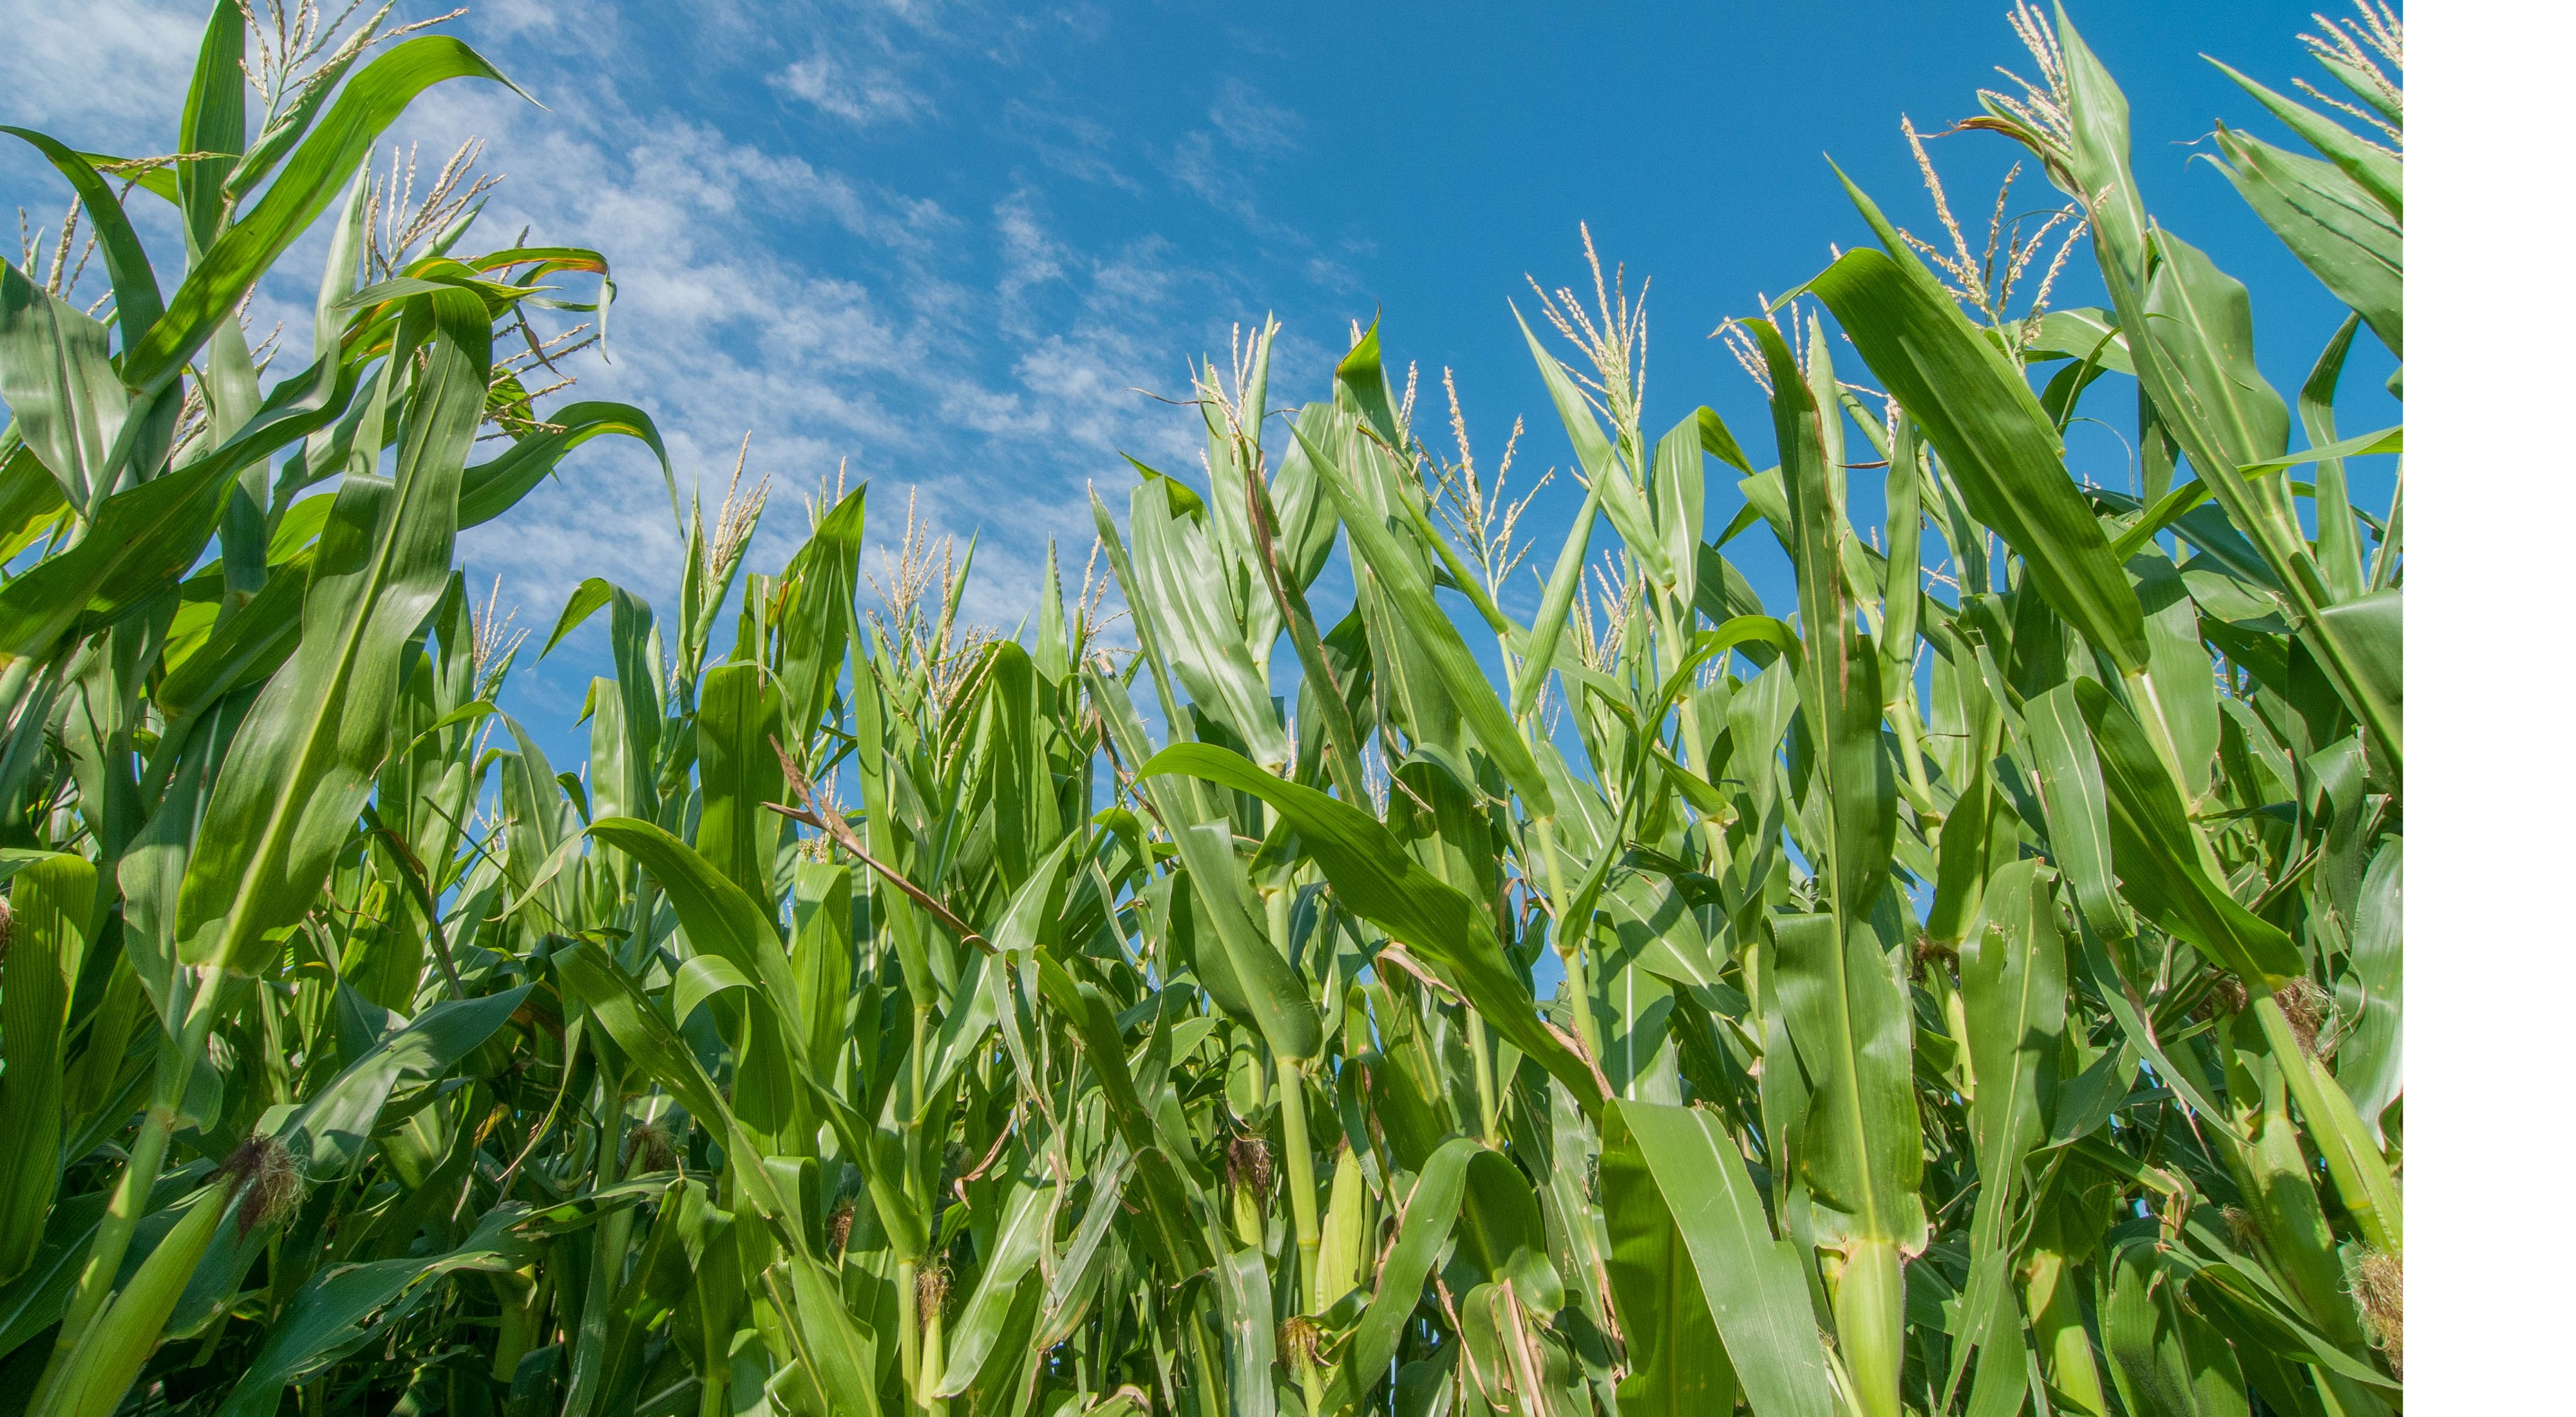 view of corn stalks from below agains the sky